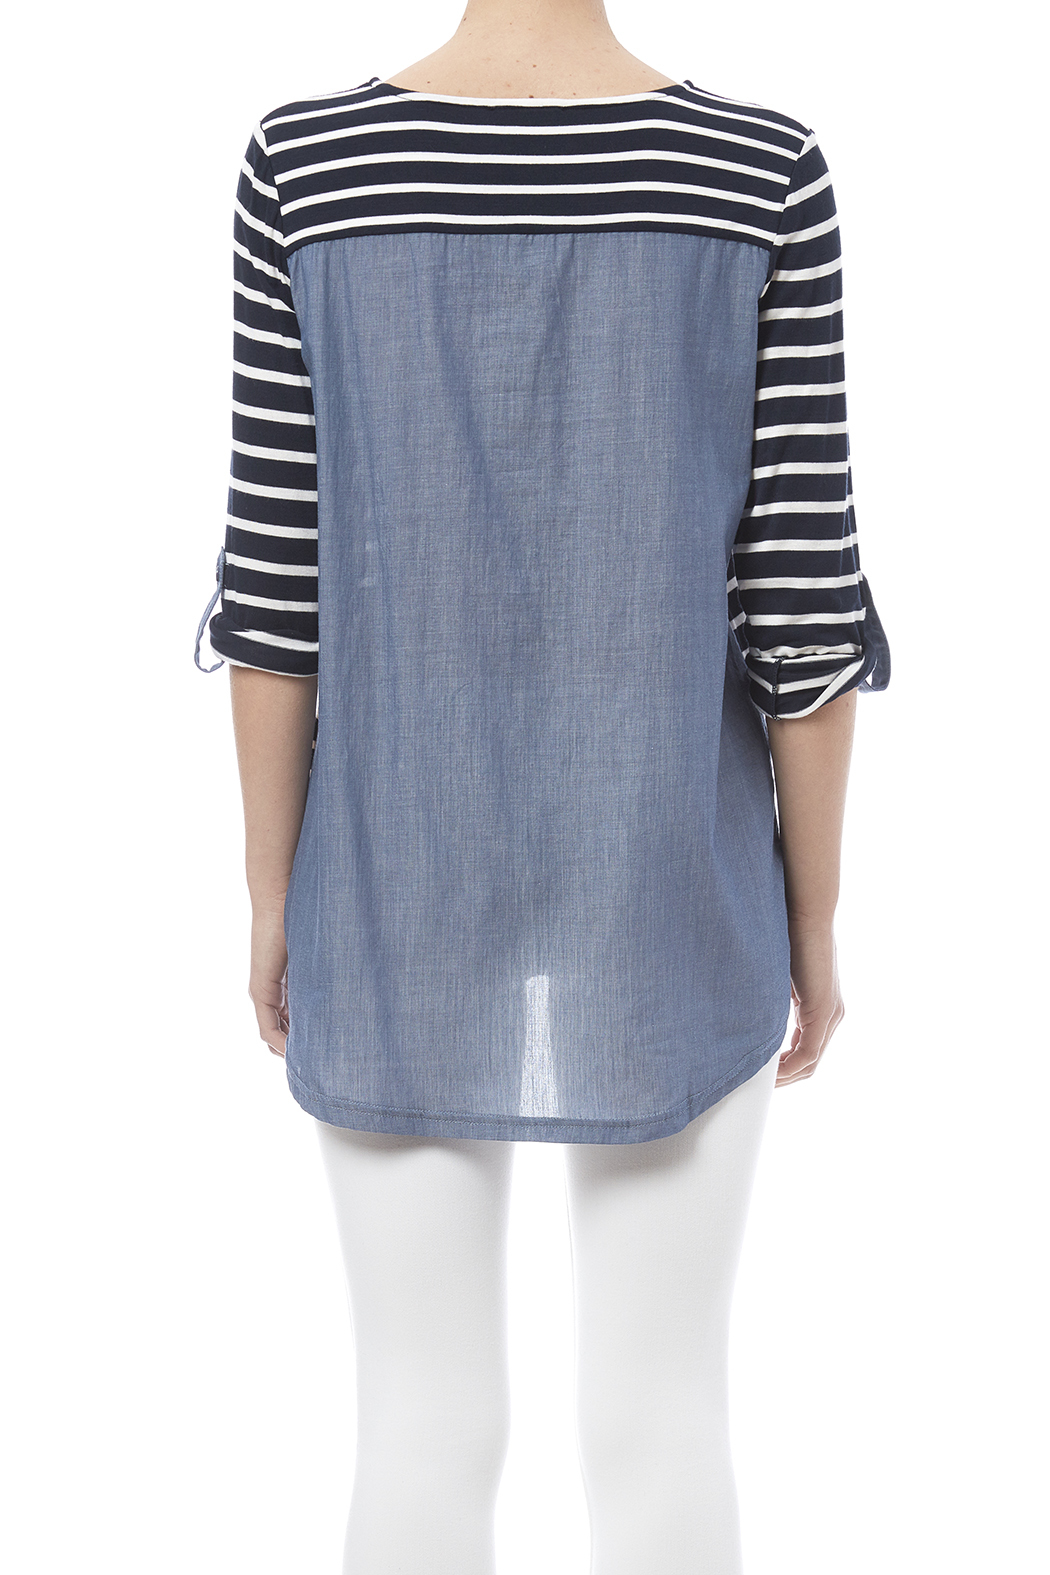 Tribal Stripe Chambray Top - Back Cropped Image